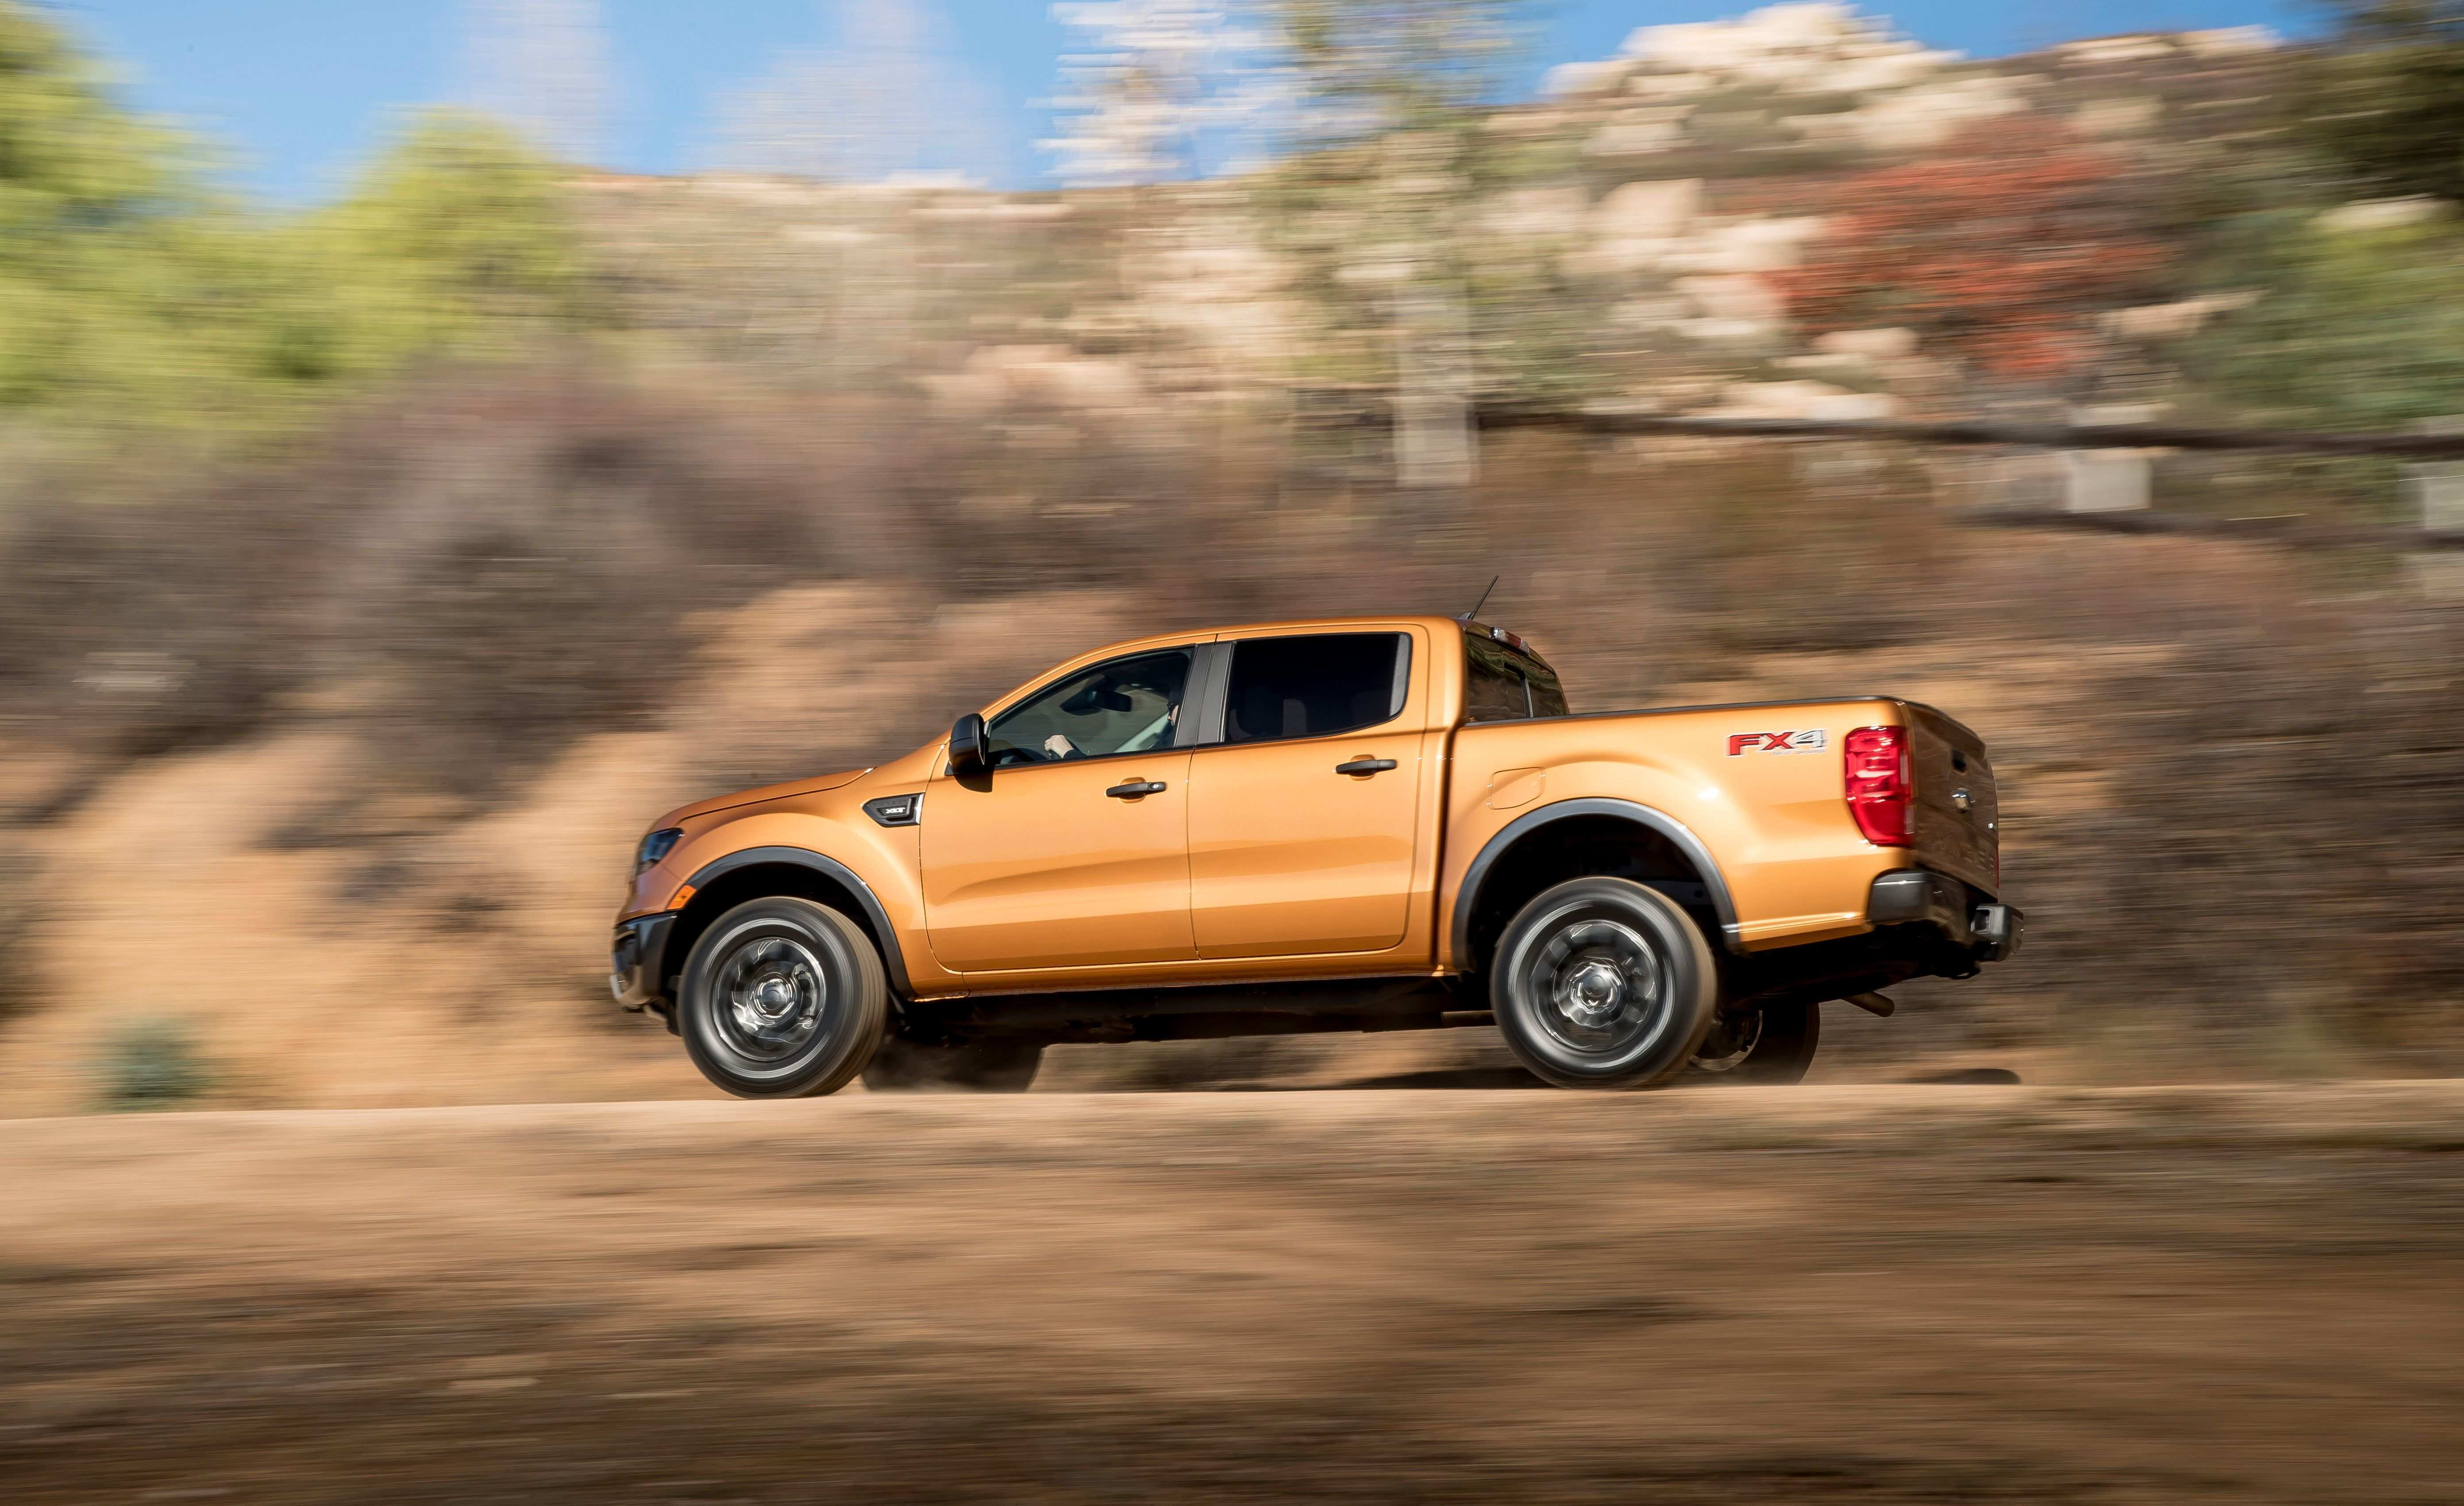 20 All New 2019 Ford Ranger Dimensions Research New with 2019 Ford Ranger Dimensions